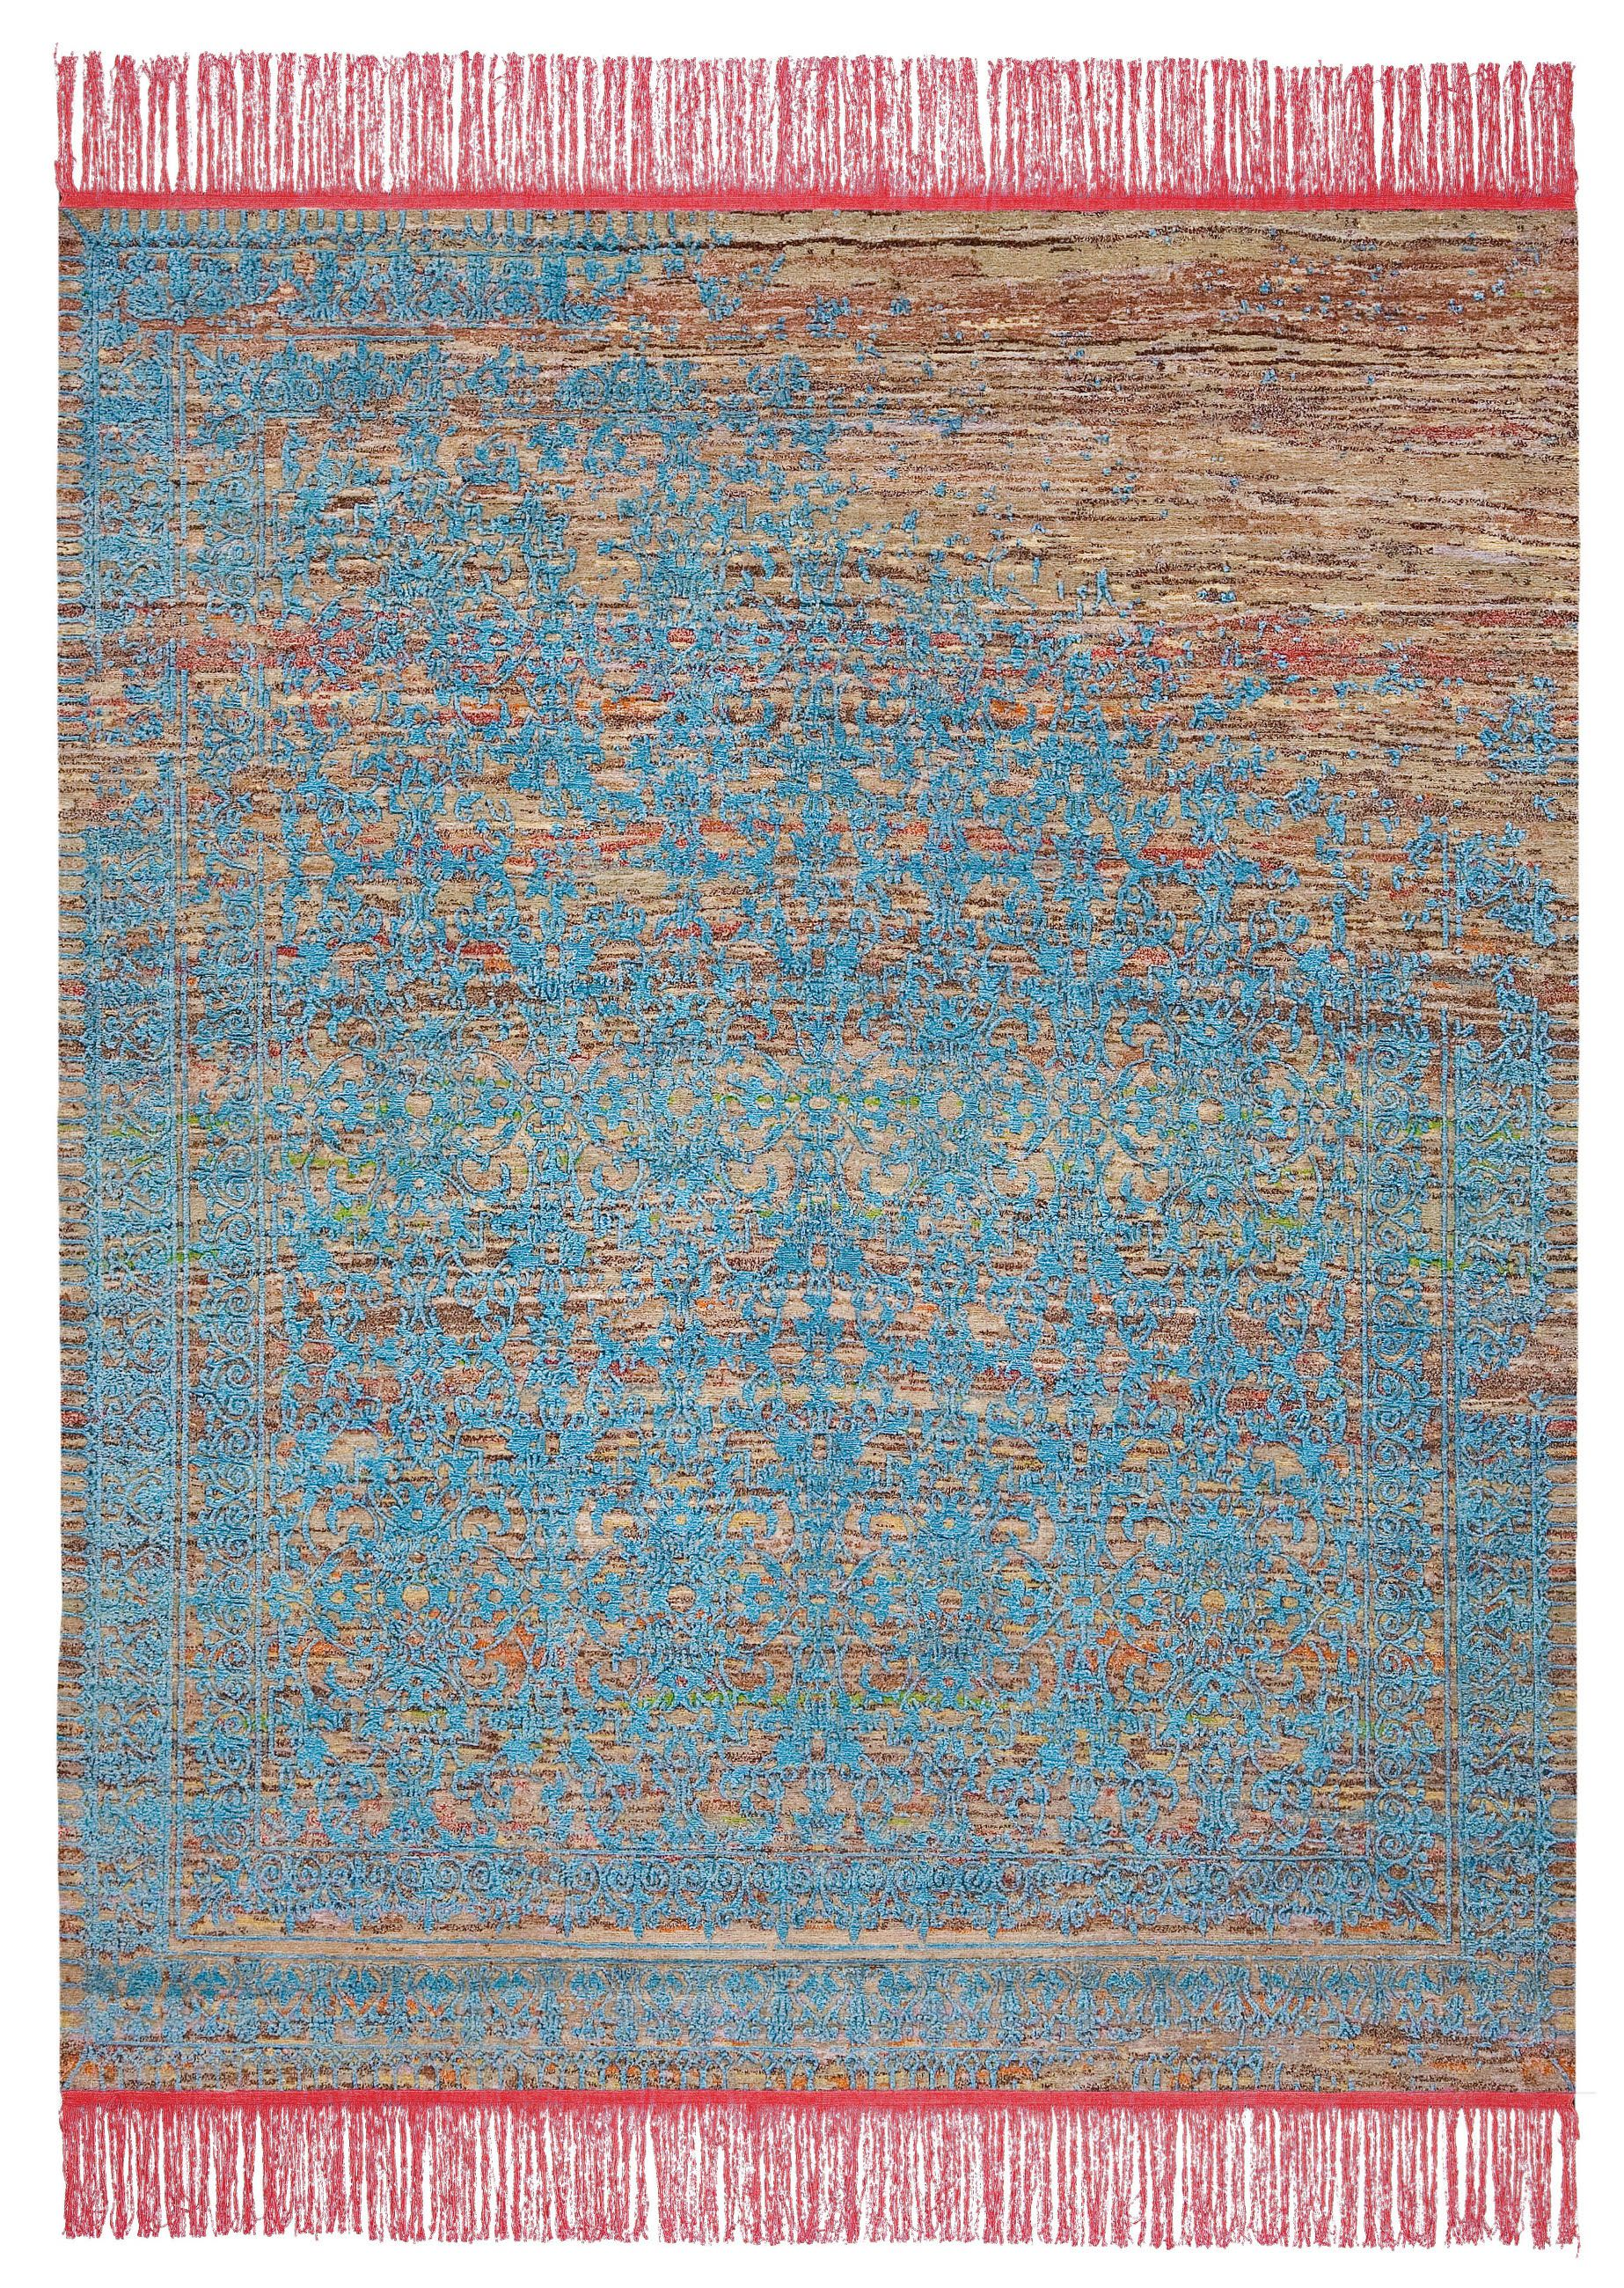 ferrara radi rocked jan kath rugs carpets weaving rugs pinterest carpet design woven. Black Bedroom Furniture Sets. Home Design Ideas